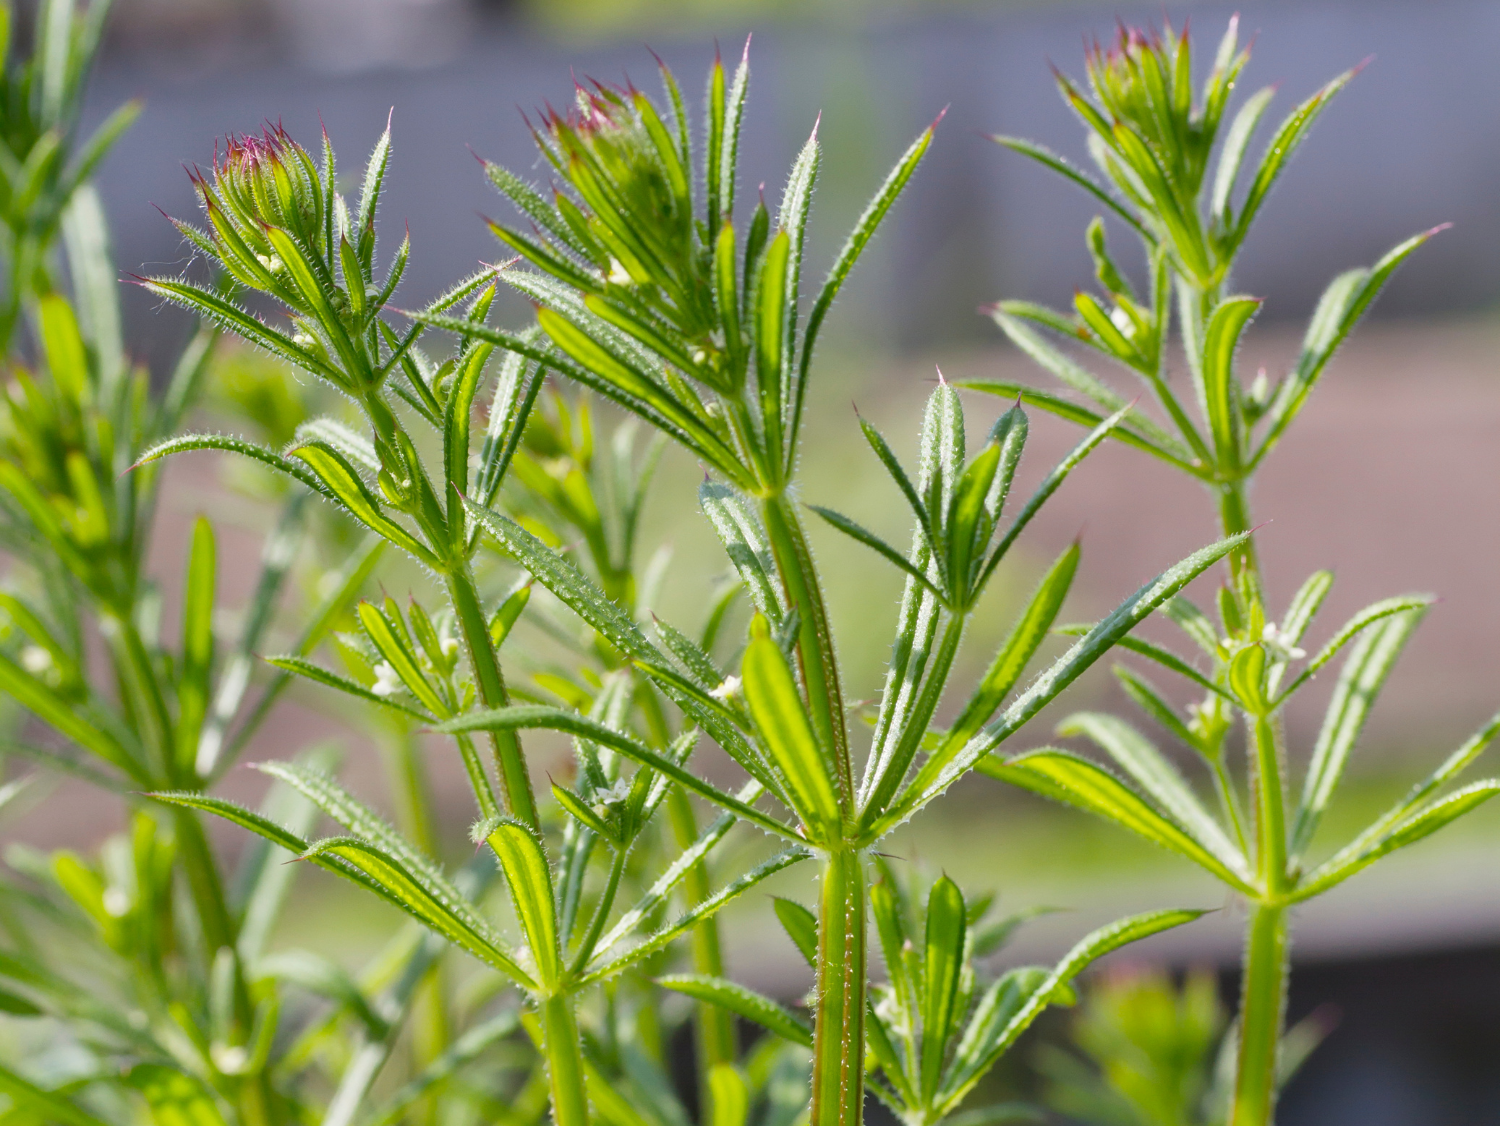 Cleavers - A Foraging Guide to Its Food, Medicine and Other Uses